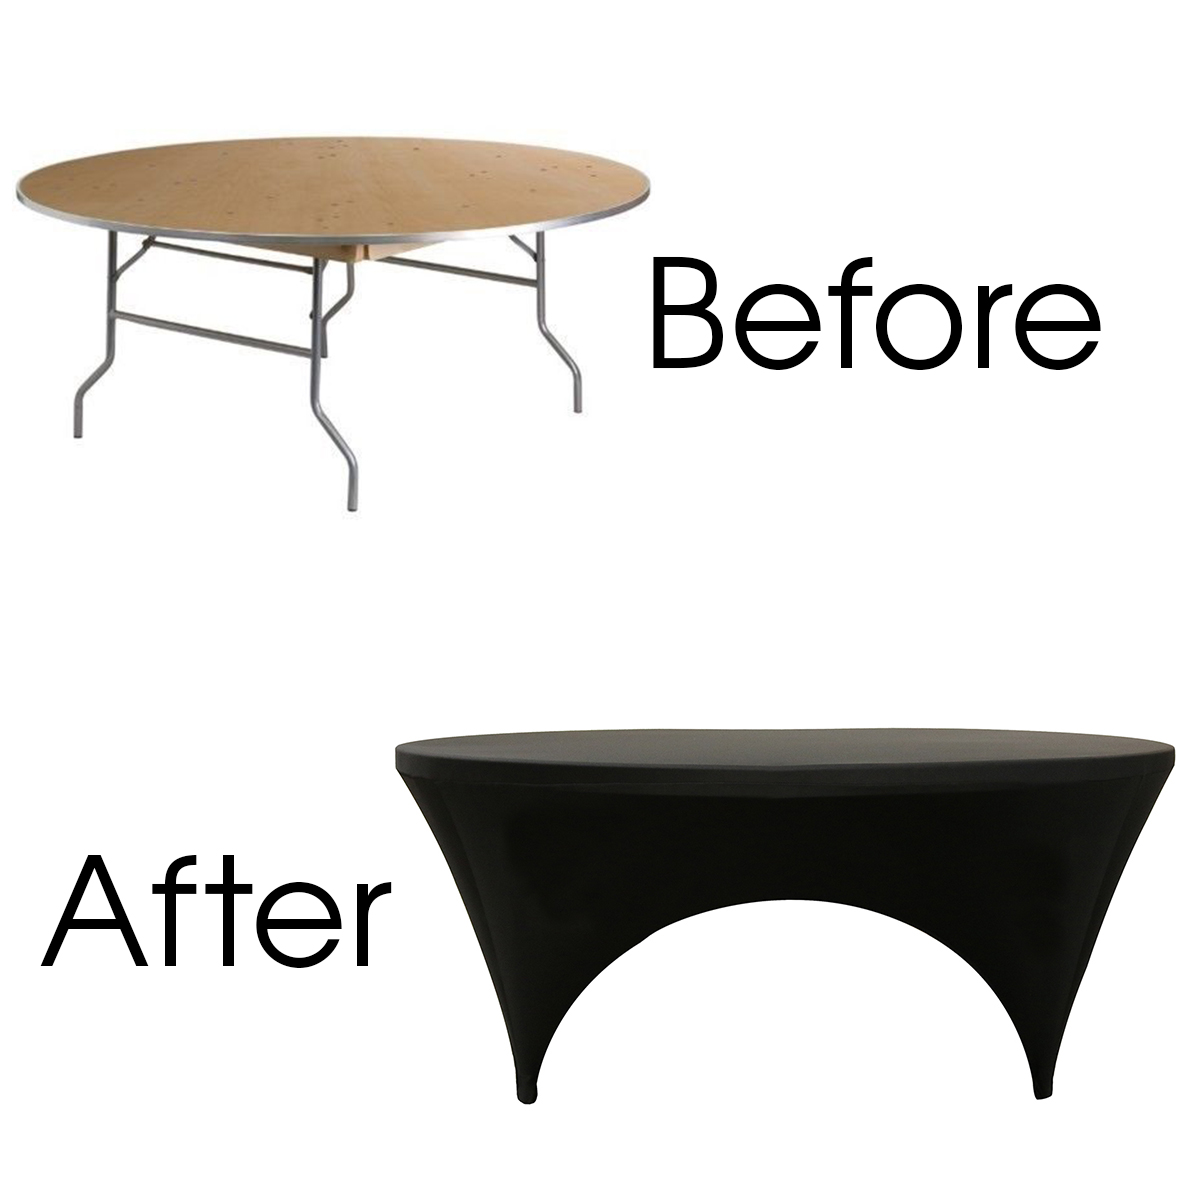 stretch-spandex-6ft-round-table-covers-black-sides-open-before-after.jpg